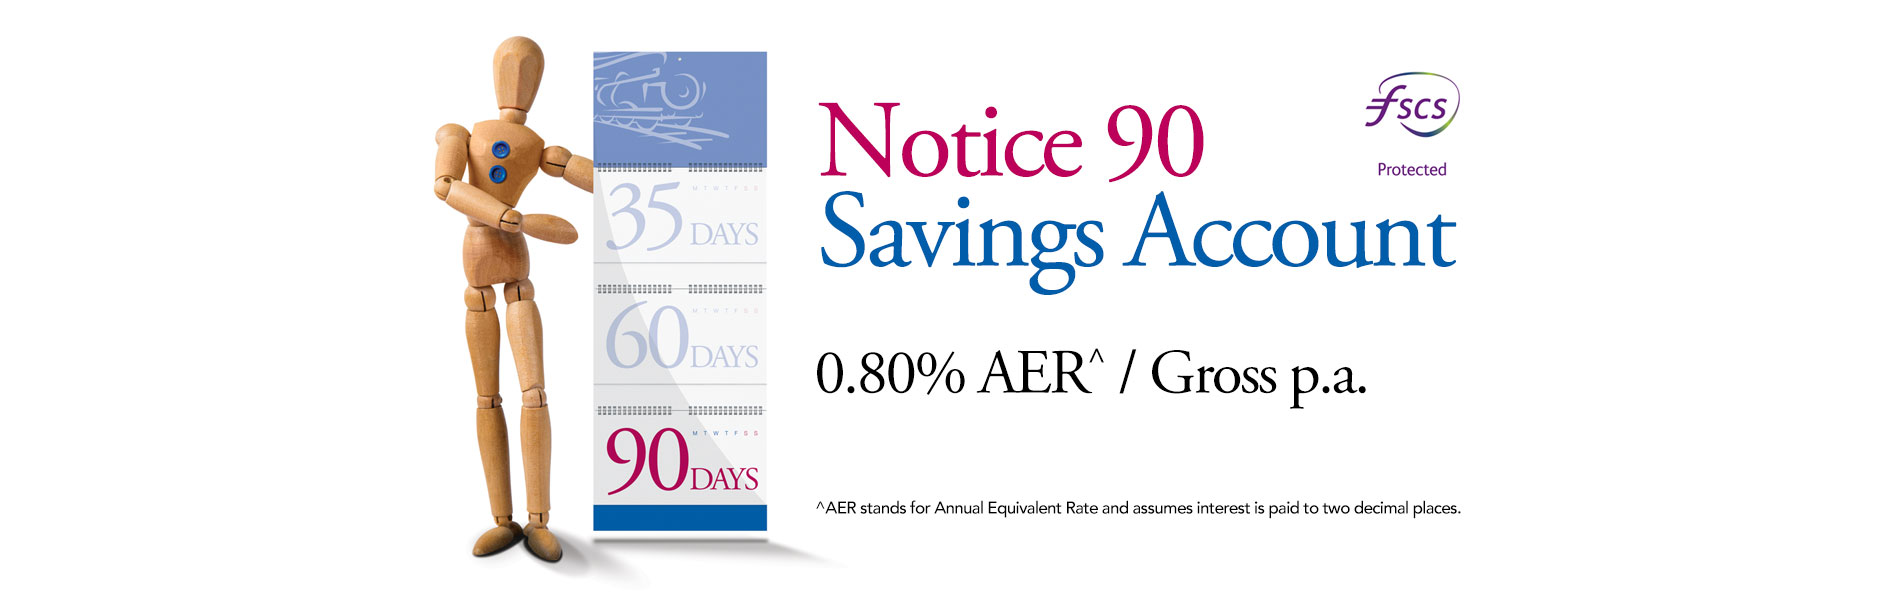 Savings Account - Notice 90 Image